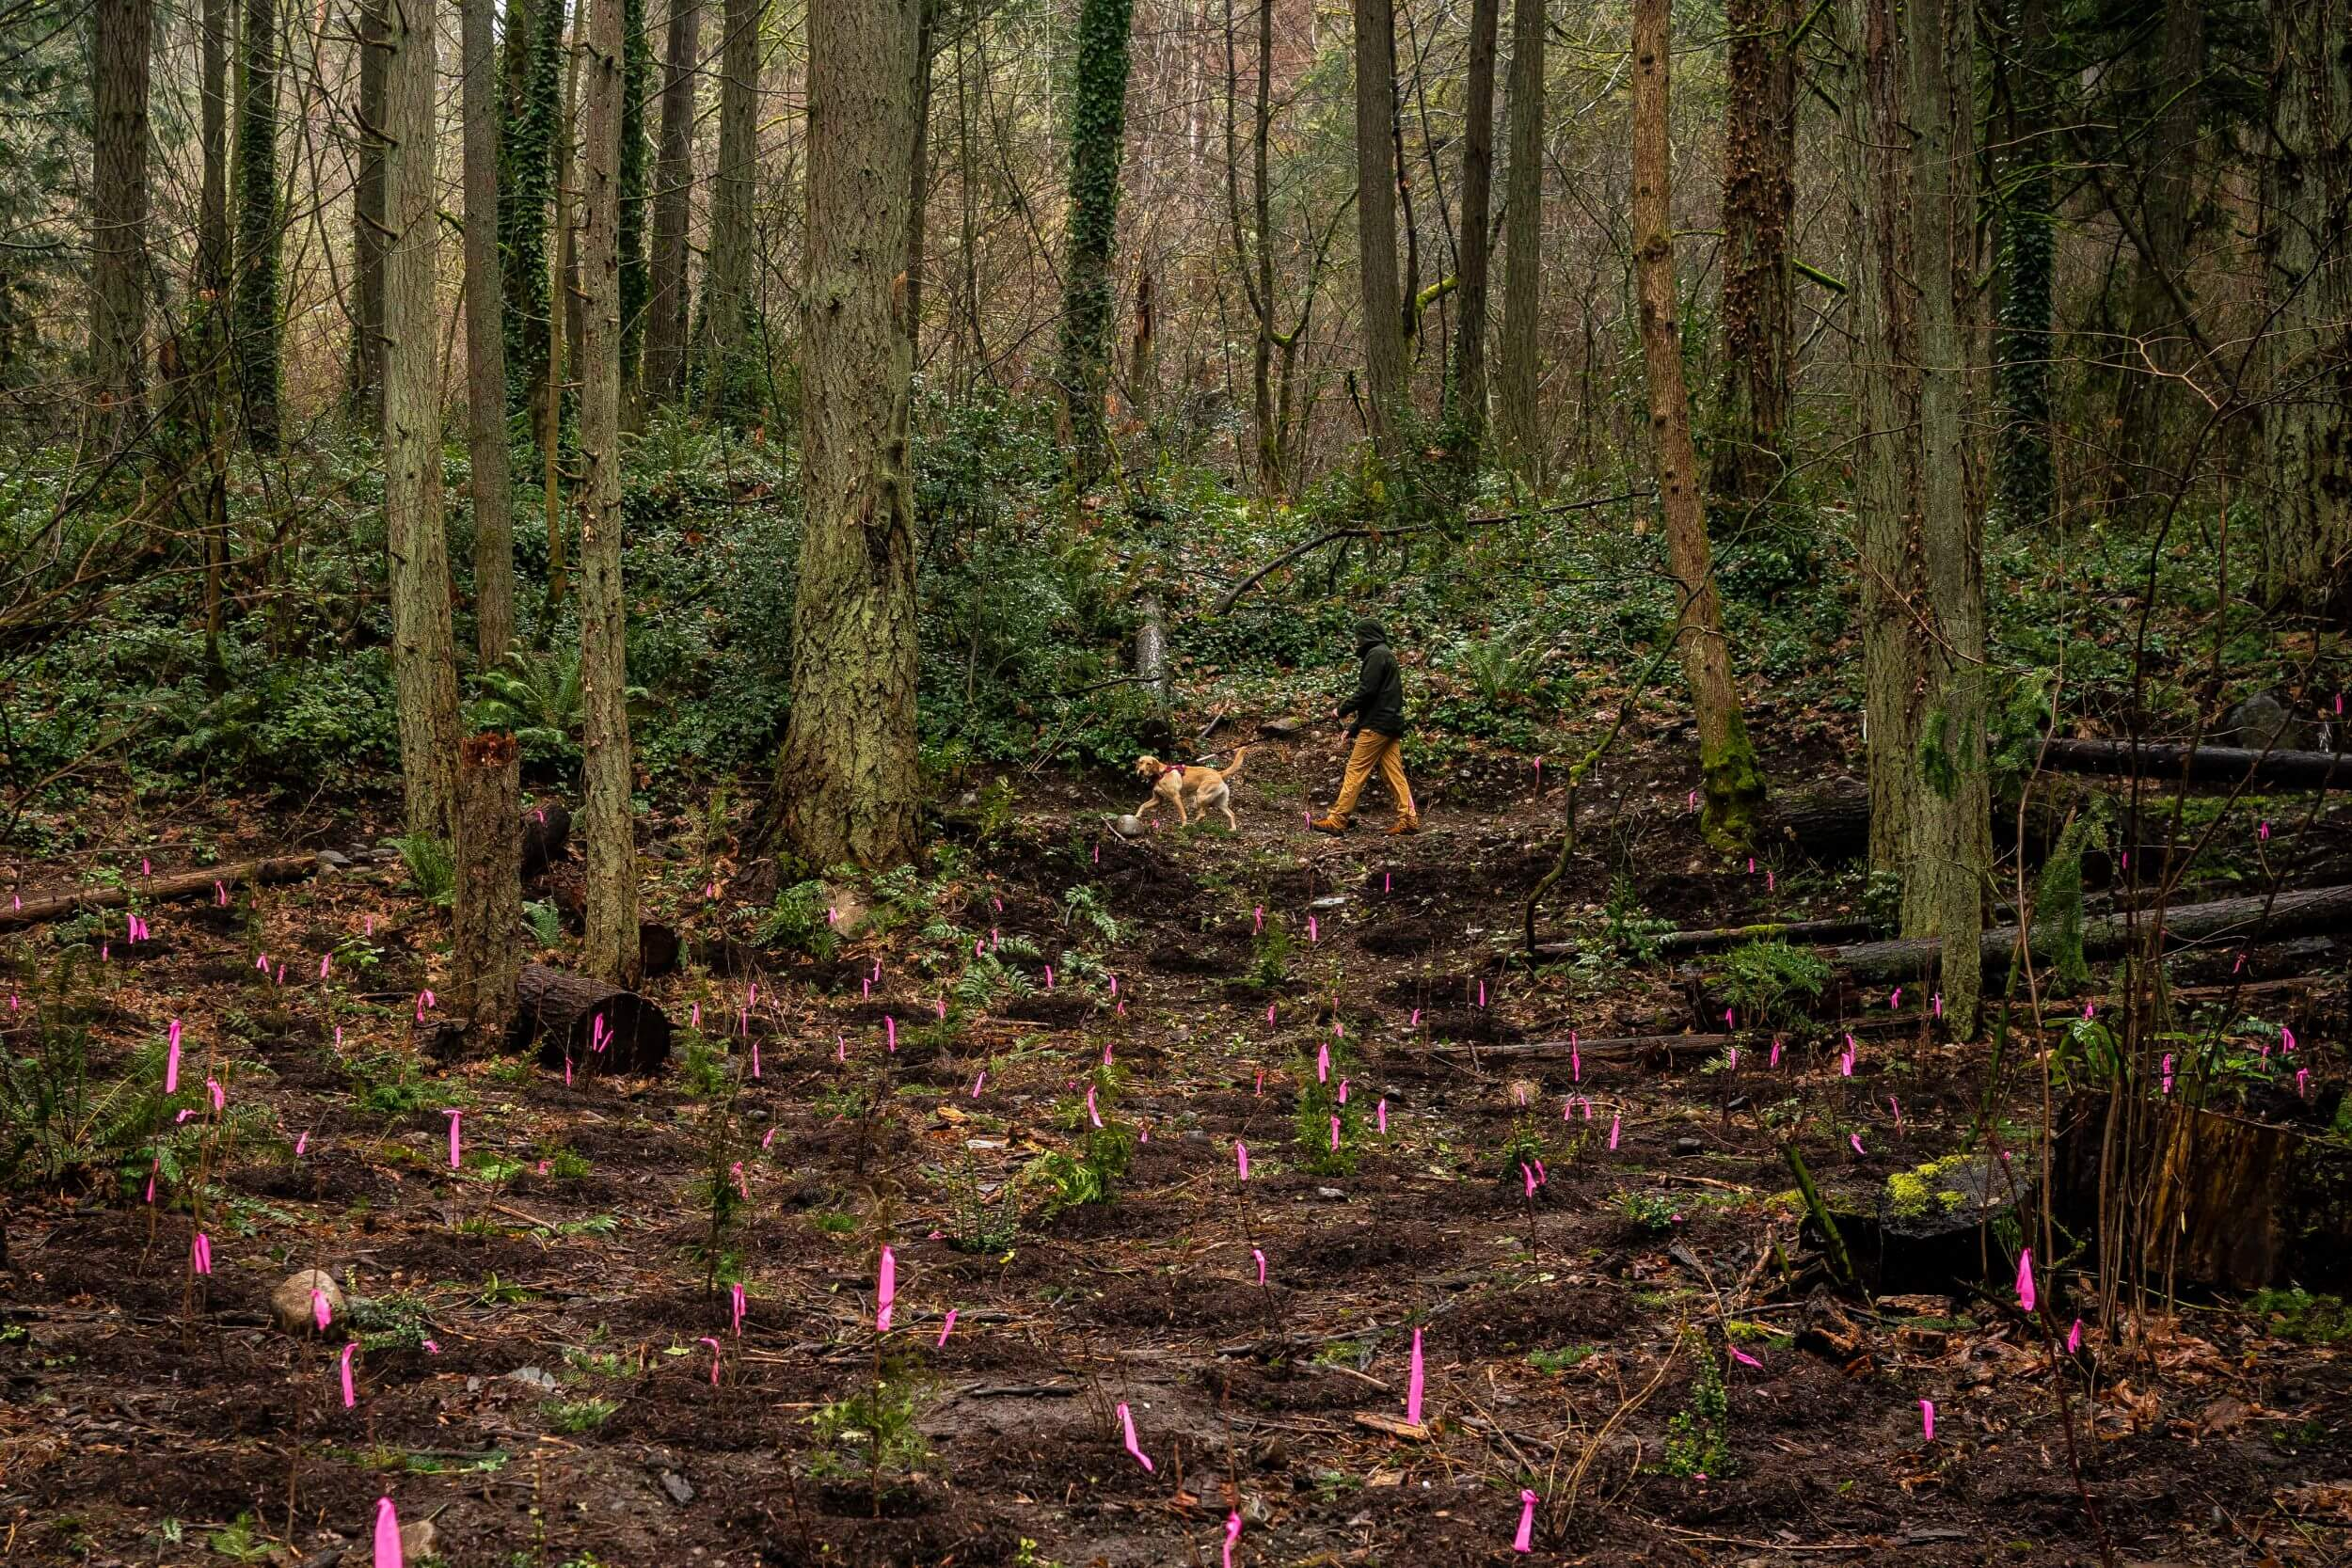 Tree justice? Lawmakers look to revive forests in Washington cities with eye on racial environmental disparities